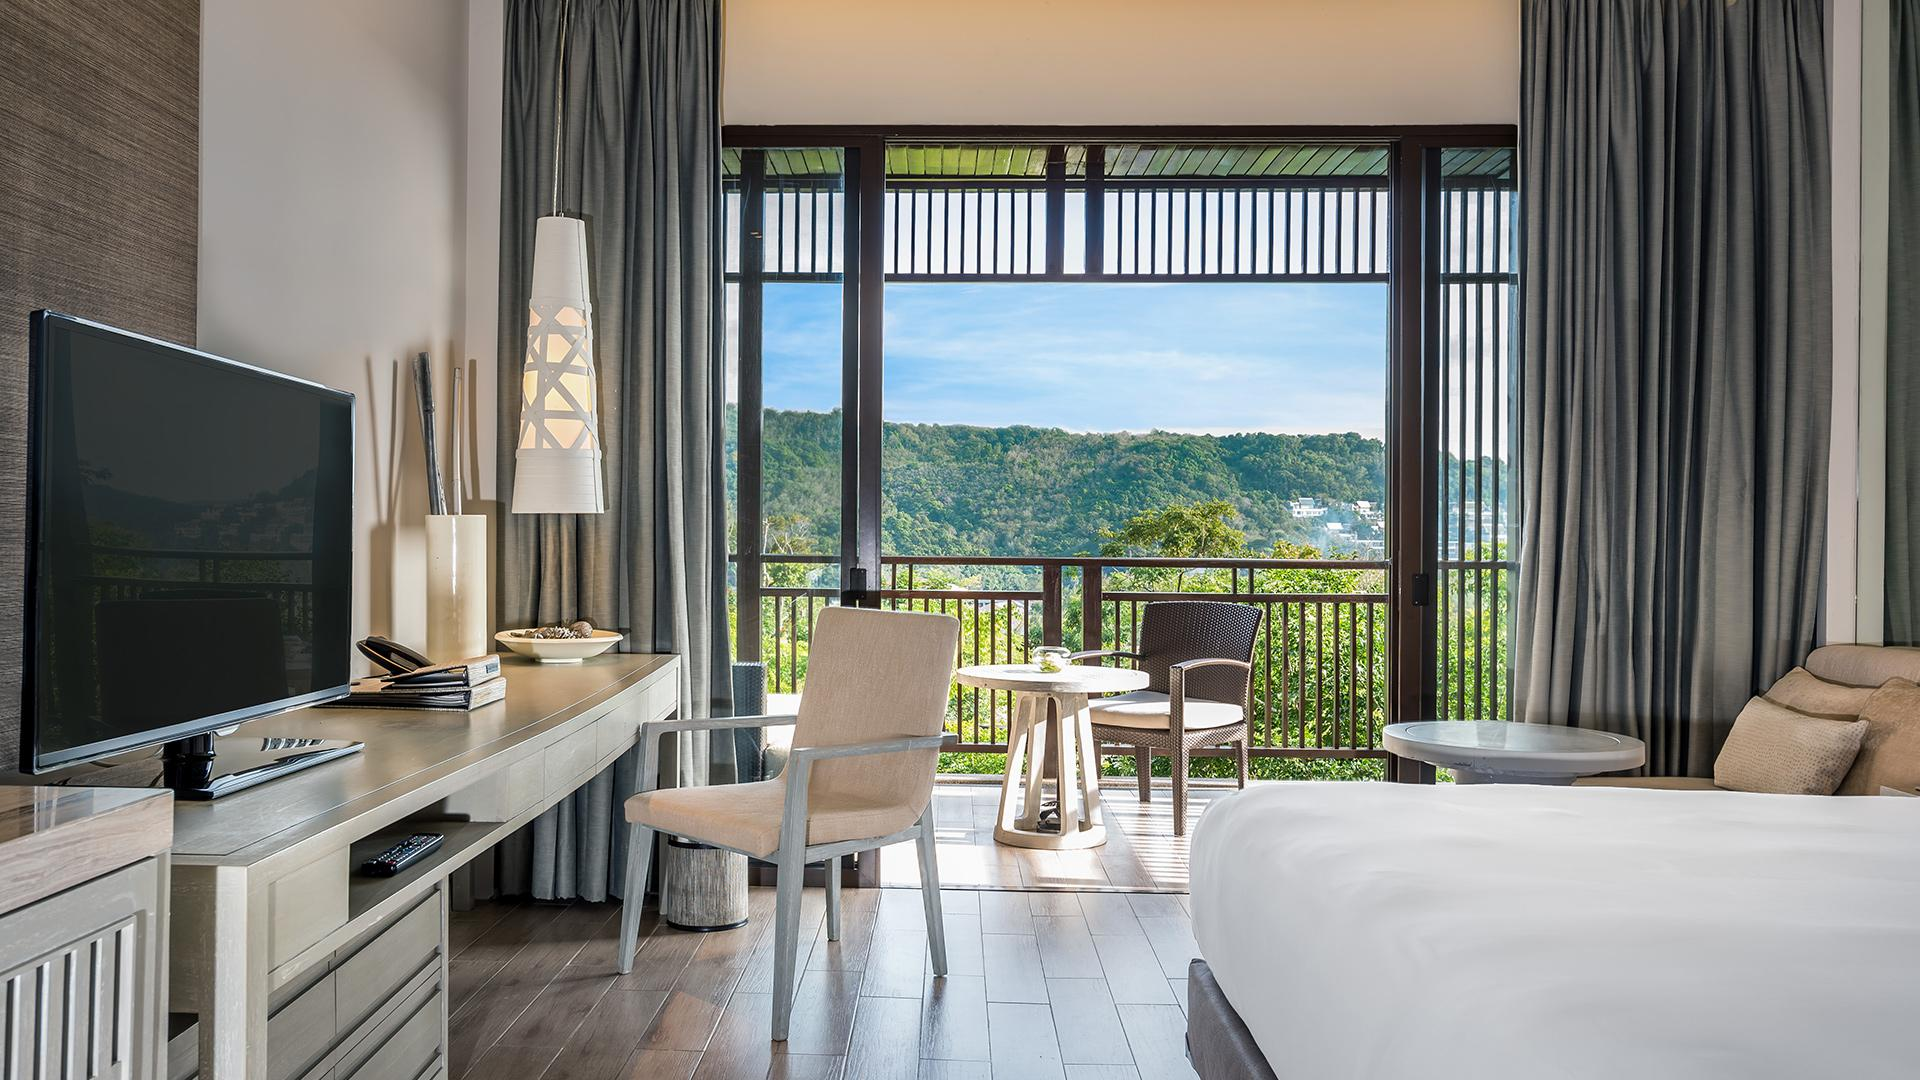 Deluxe Room image 1 at Hotel Pullman Phuket Arcadia Naithon Beach by อำเภอถลาง, Phuket, Thailand